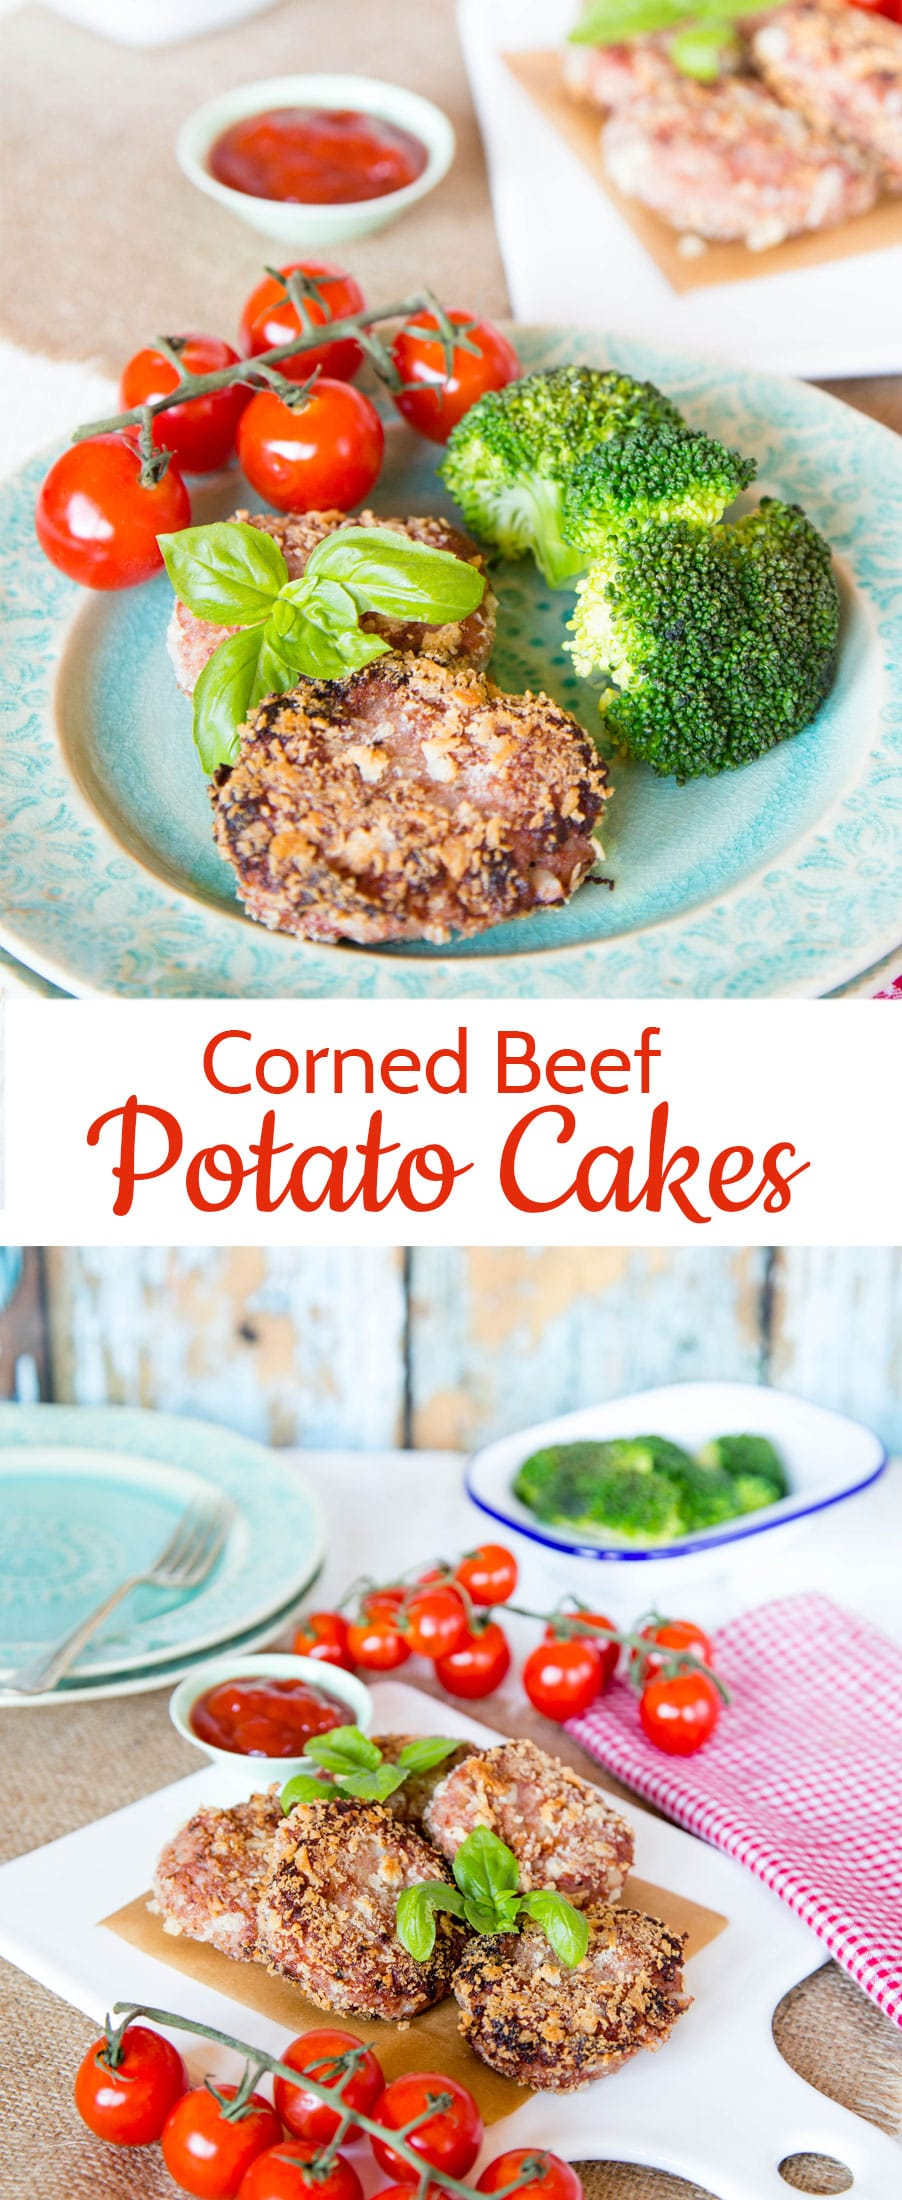 An easy recipe for comforting corned beef and potato cakes; this recipe is a great way to use up leftover boiled potatoes.